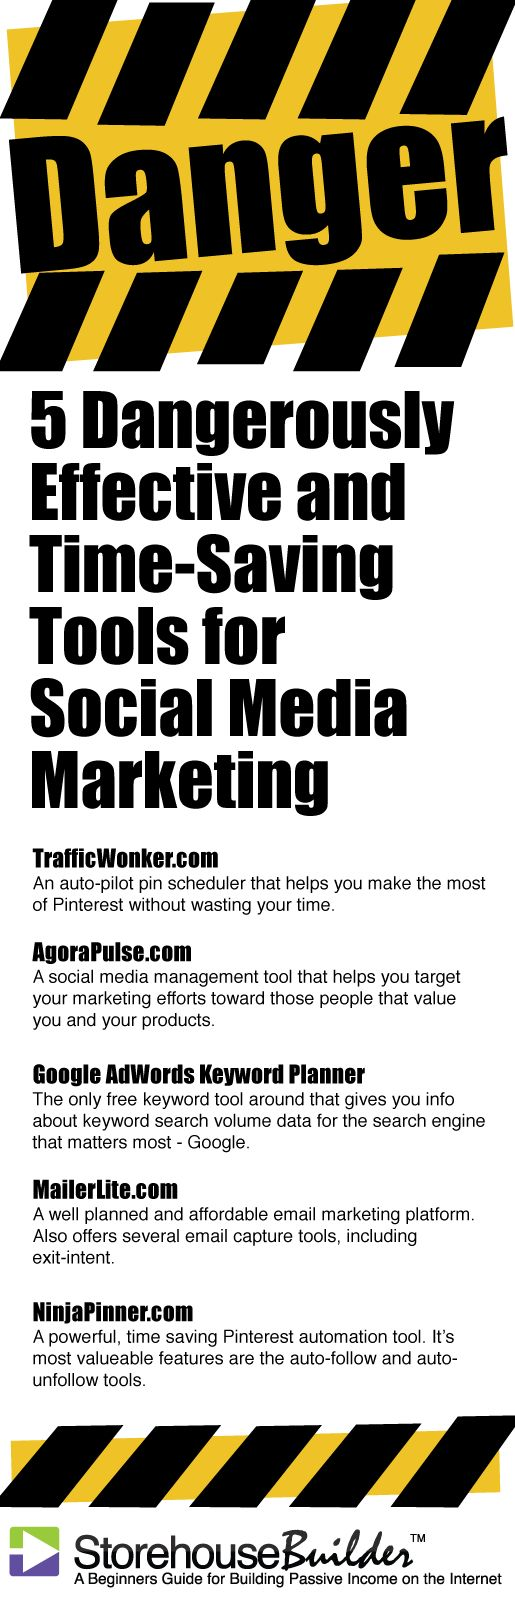 5 Dangerously Effective Tools for Social Media Marketing | Maximize Productivity While Saving Time and Money - http://www.storehousebuilder.com/general/five-dangerously-effective-tools-for-social-media-marketing.php